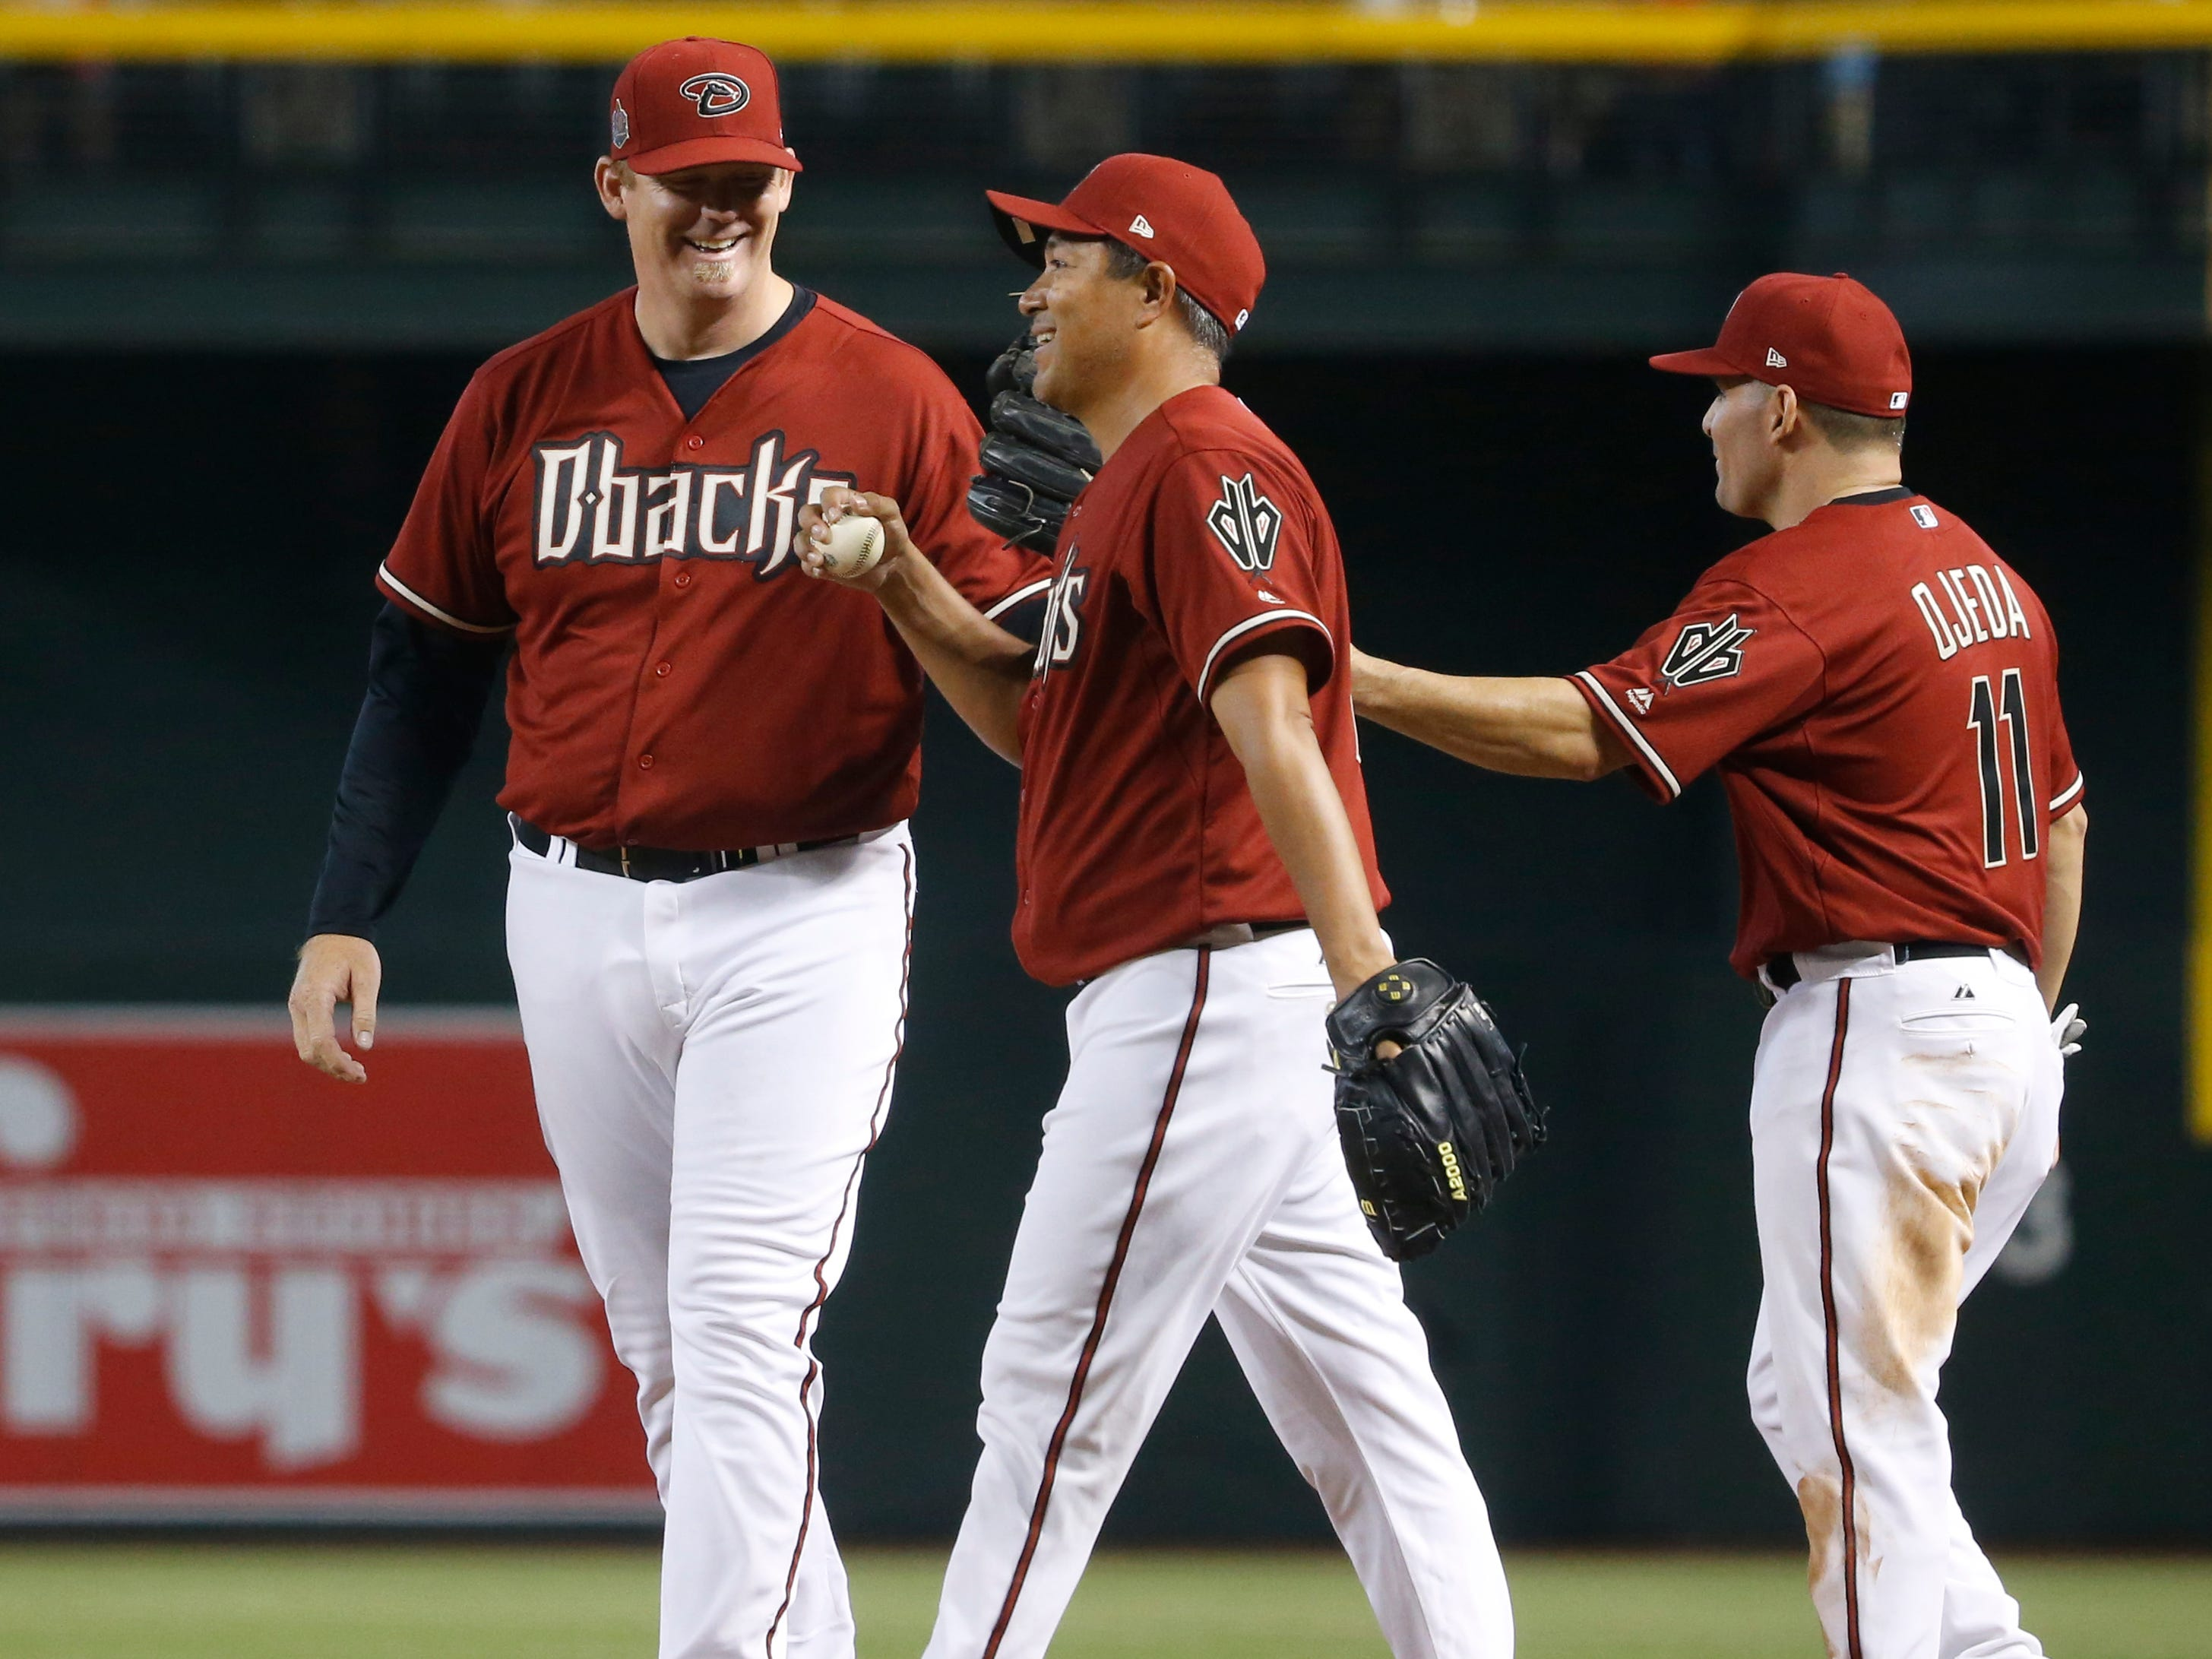 Diamondbacks Red team's Augie Ojeda (center) laughs with JJ Putz (L) after the two can't complete an out at first during the Generations Diamondbacks Alumni game at Chase Field in Phoenix, Ariz. on Aug. 4, 2018.